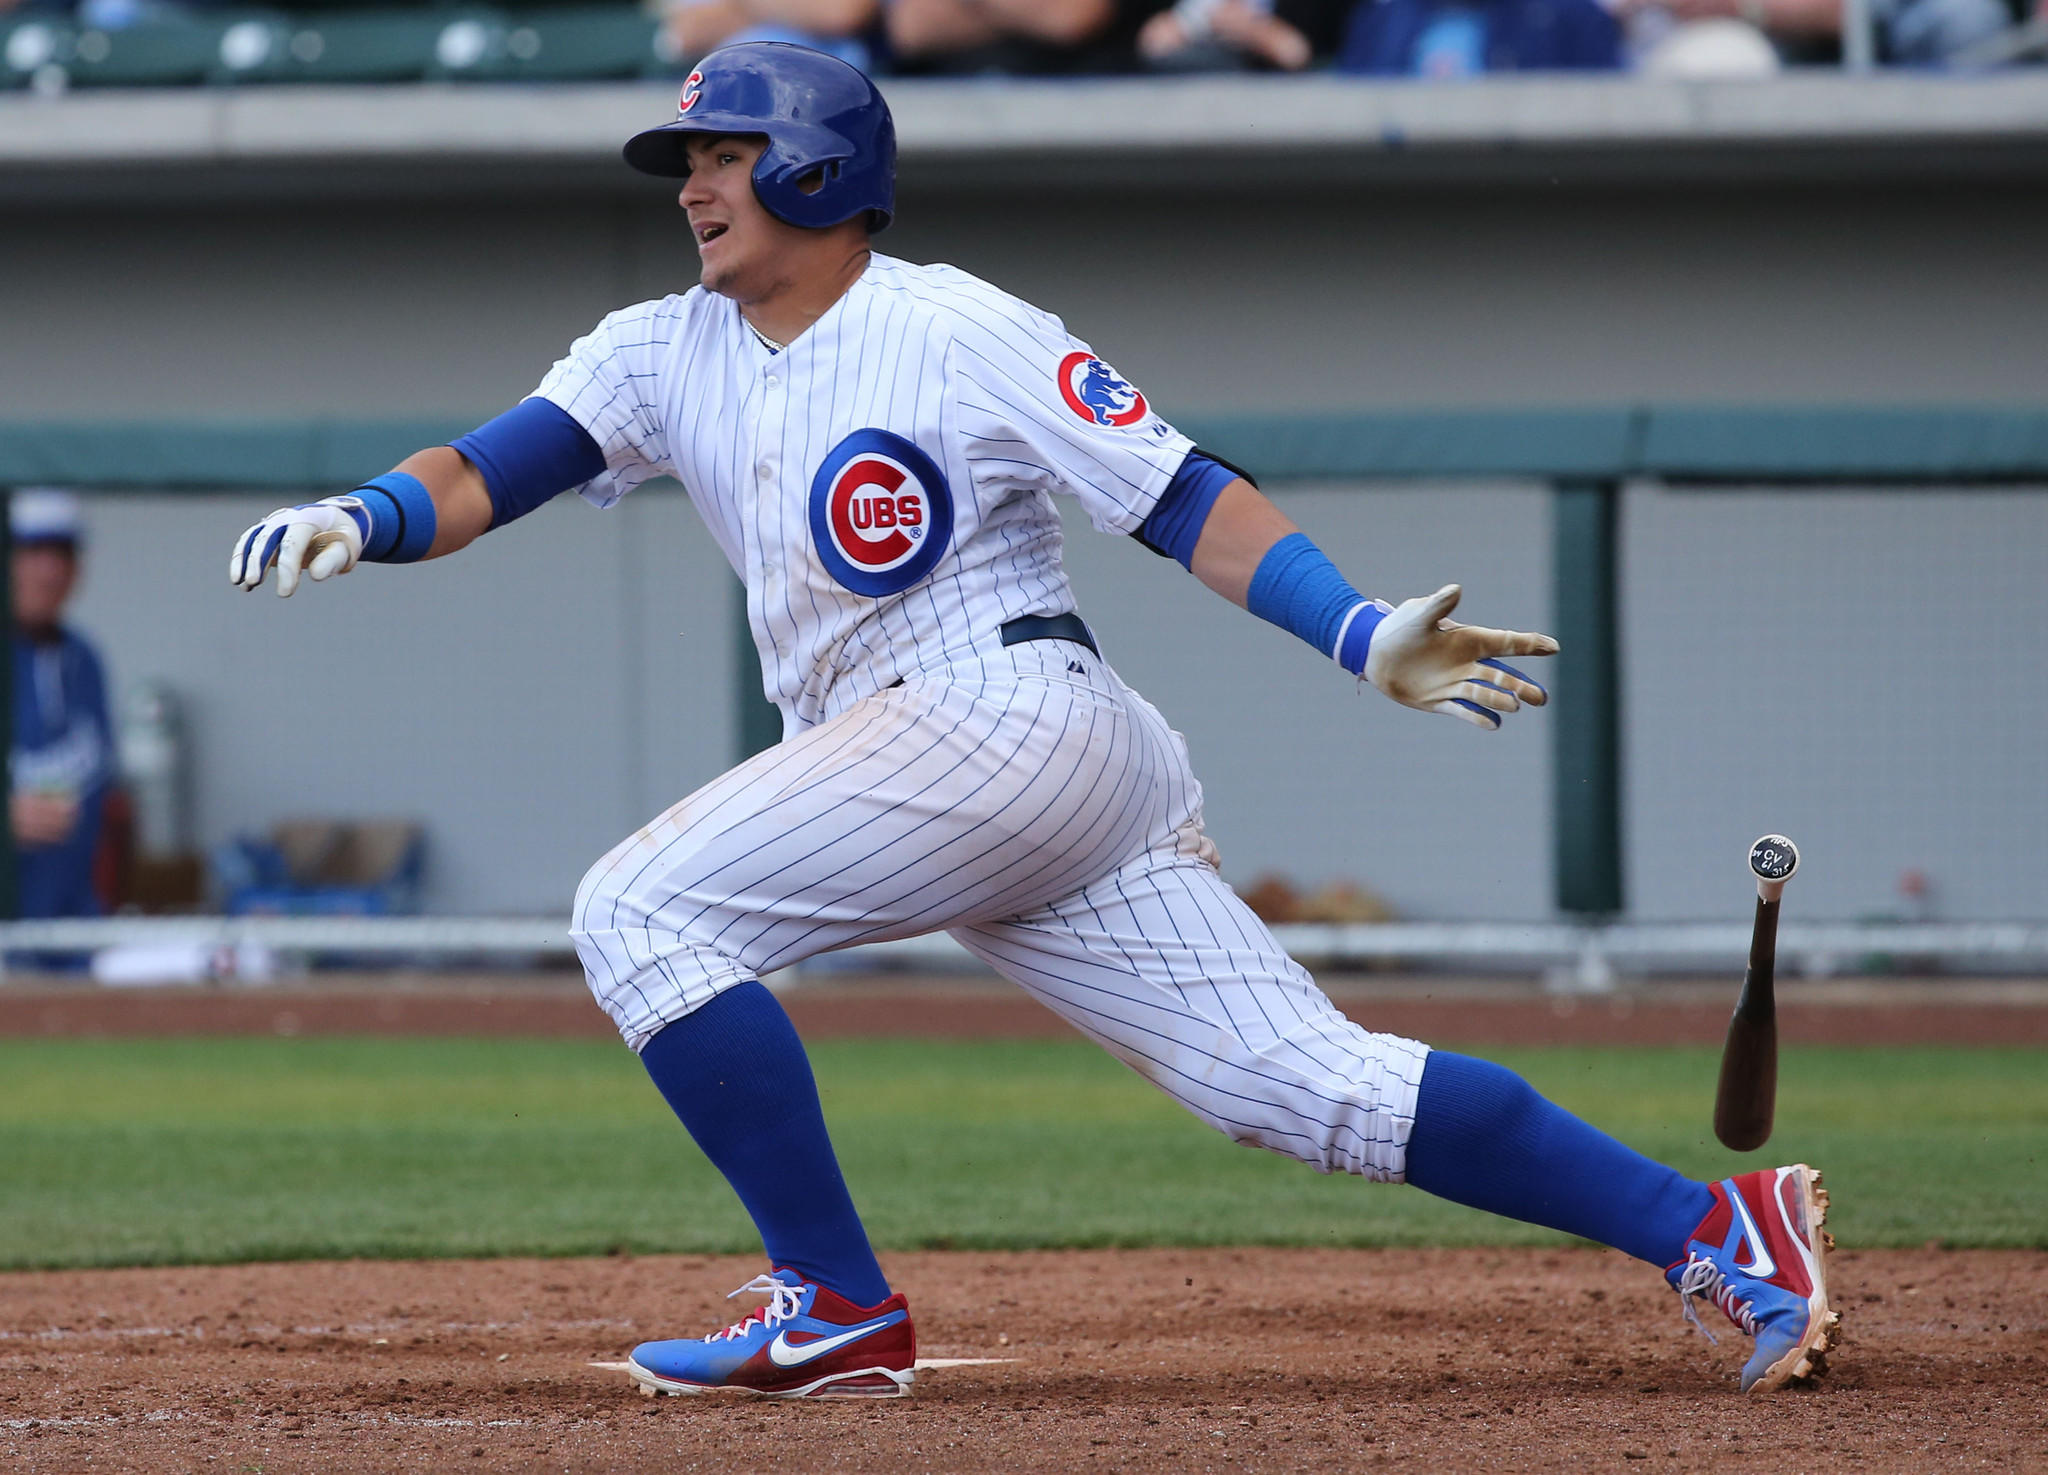 Cubs' Javier Baez during a spring training game in Arizona.